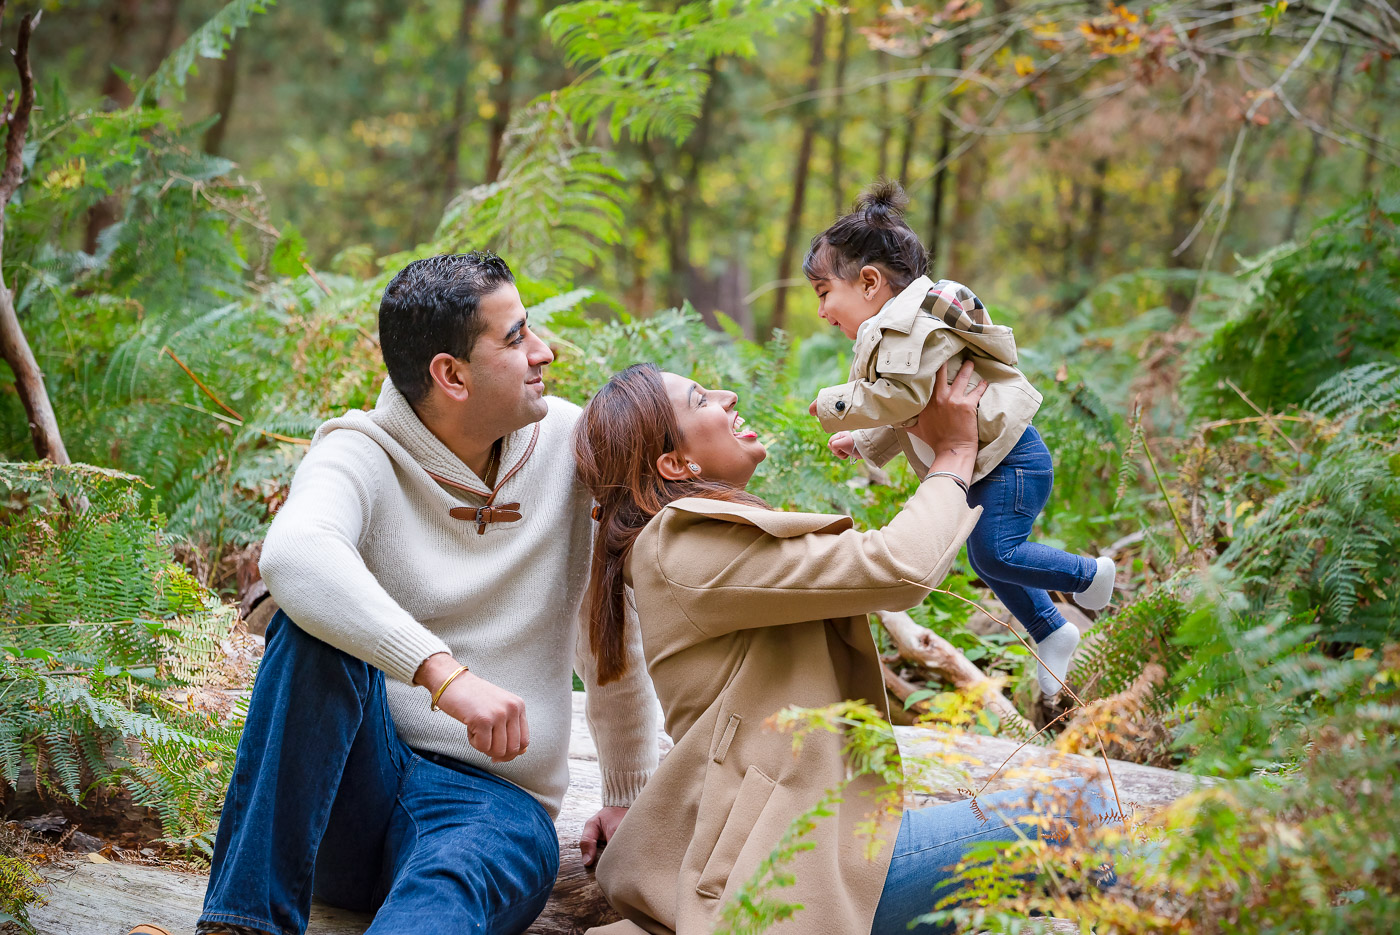 Outdoor photo session of a fun and relaxed family on logs in autumn woods